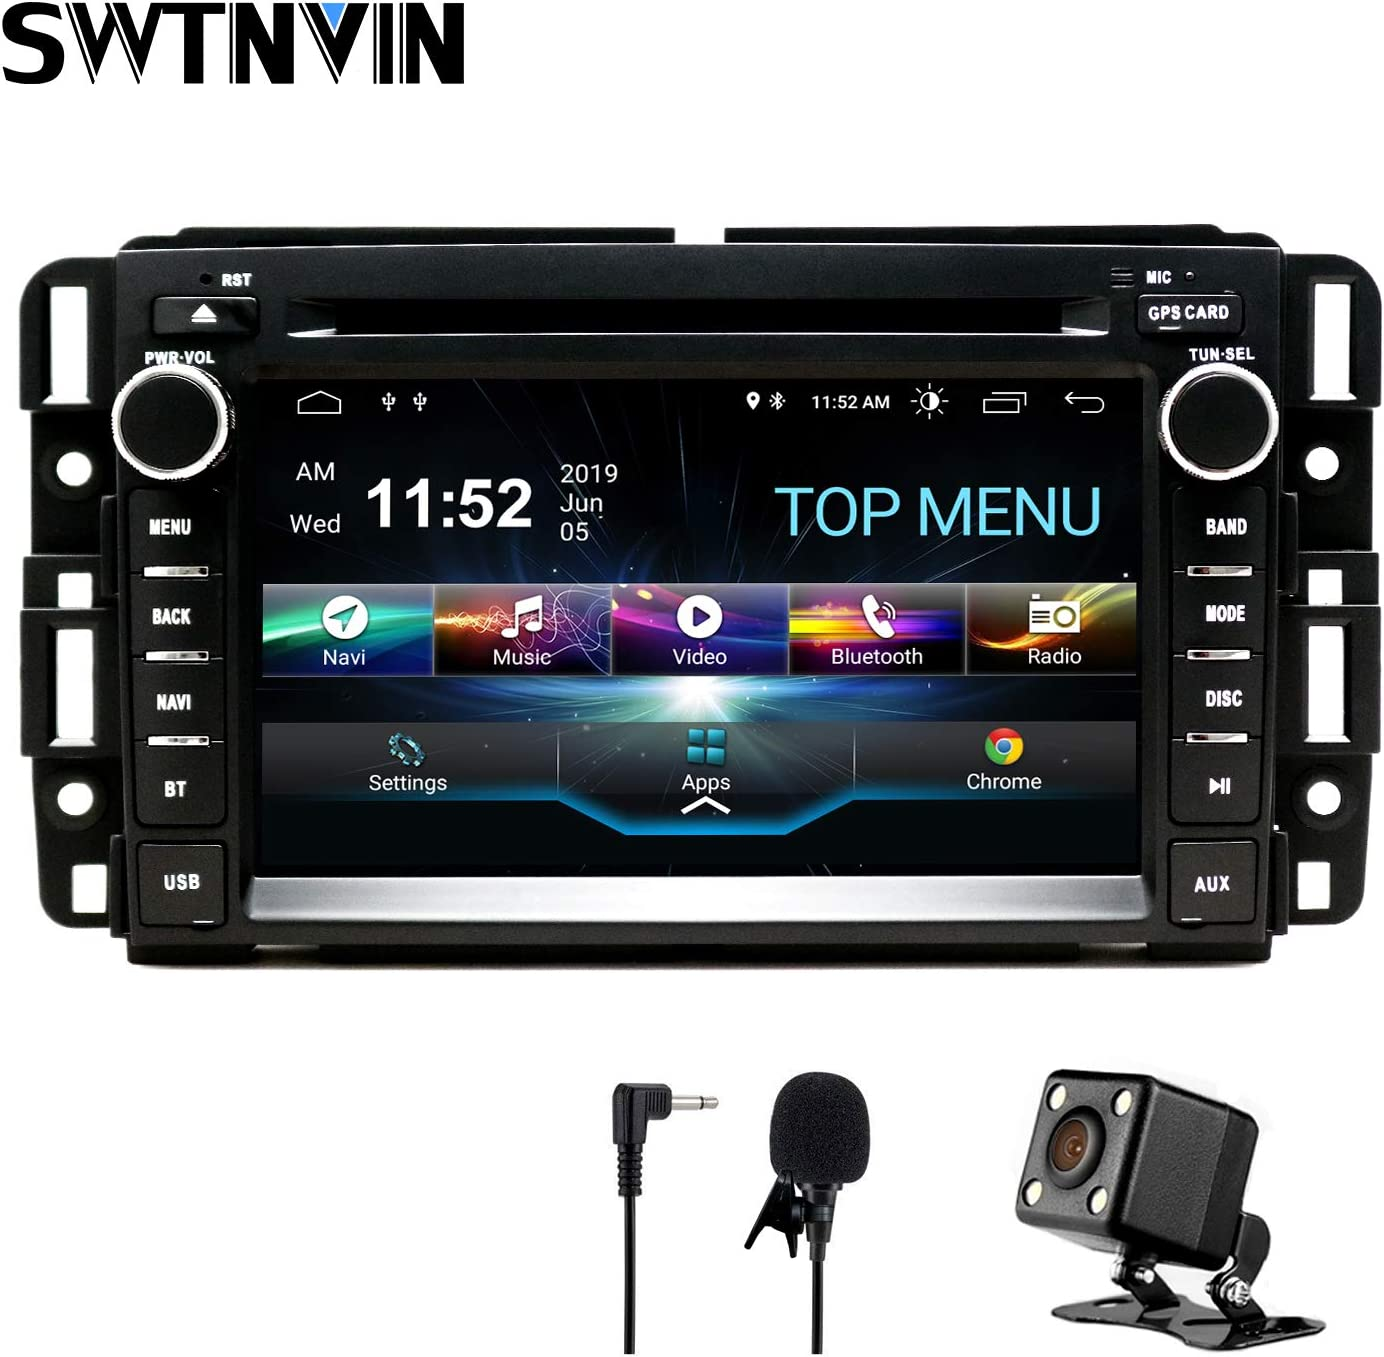 SWTNVIN Car Stereo Android 9.0 DVD Player for GMC Sierra Yukon Chevrolet Buick Chevy Silverado Double Din 2G RAM 32G ROM 7 inch Multimedia Radio Navi Support WiFi BT Steering Wheel Free Backup Camera